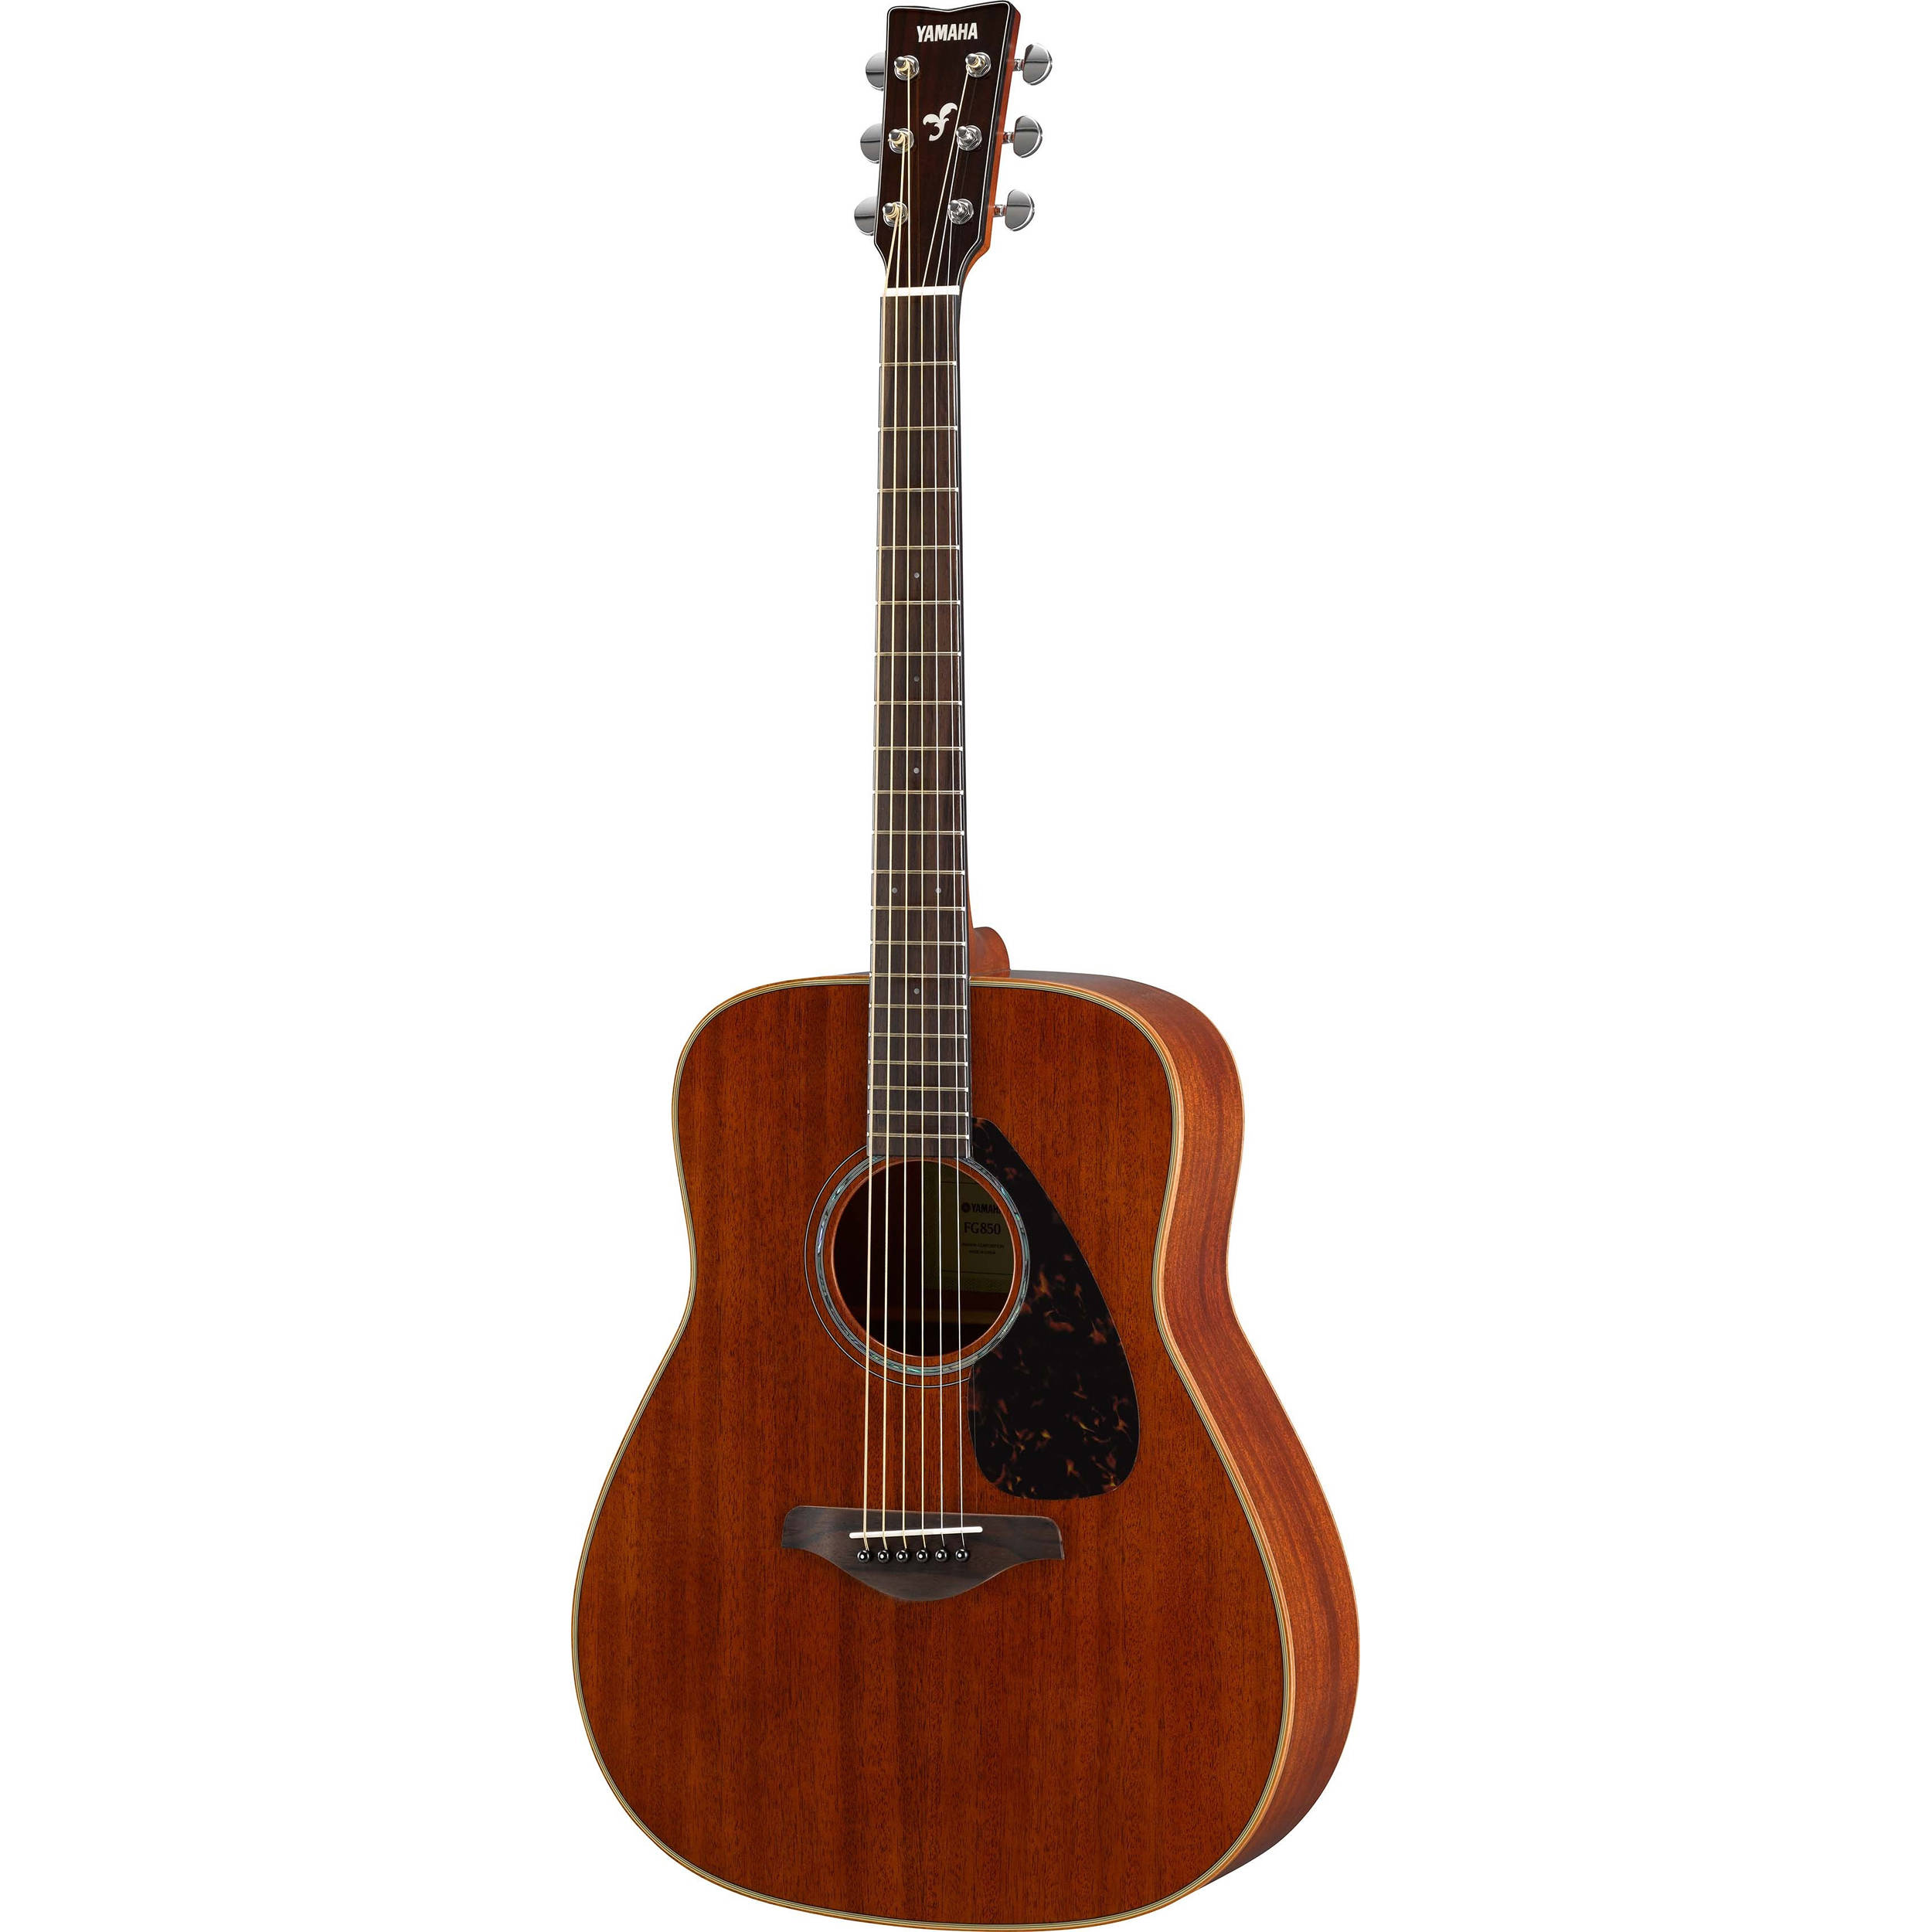 Yamaha fg850 fg series dreadnought style acoustic guitar fg850 for Yamaha classic guitar